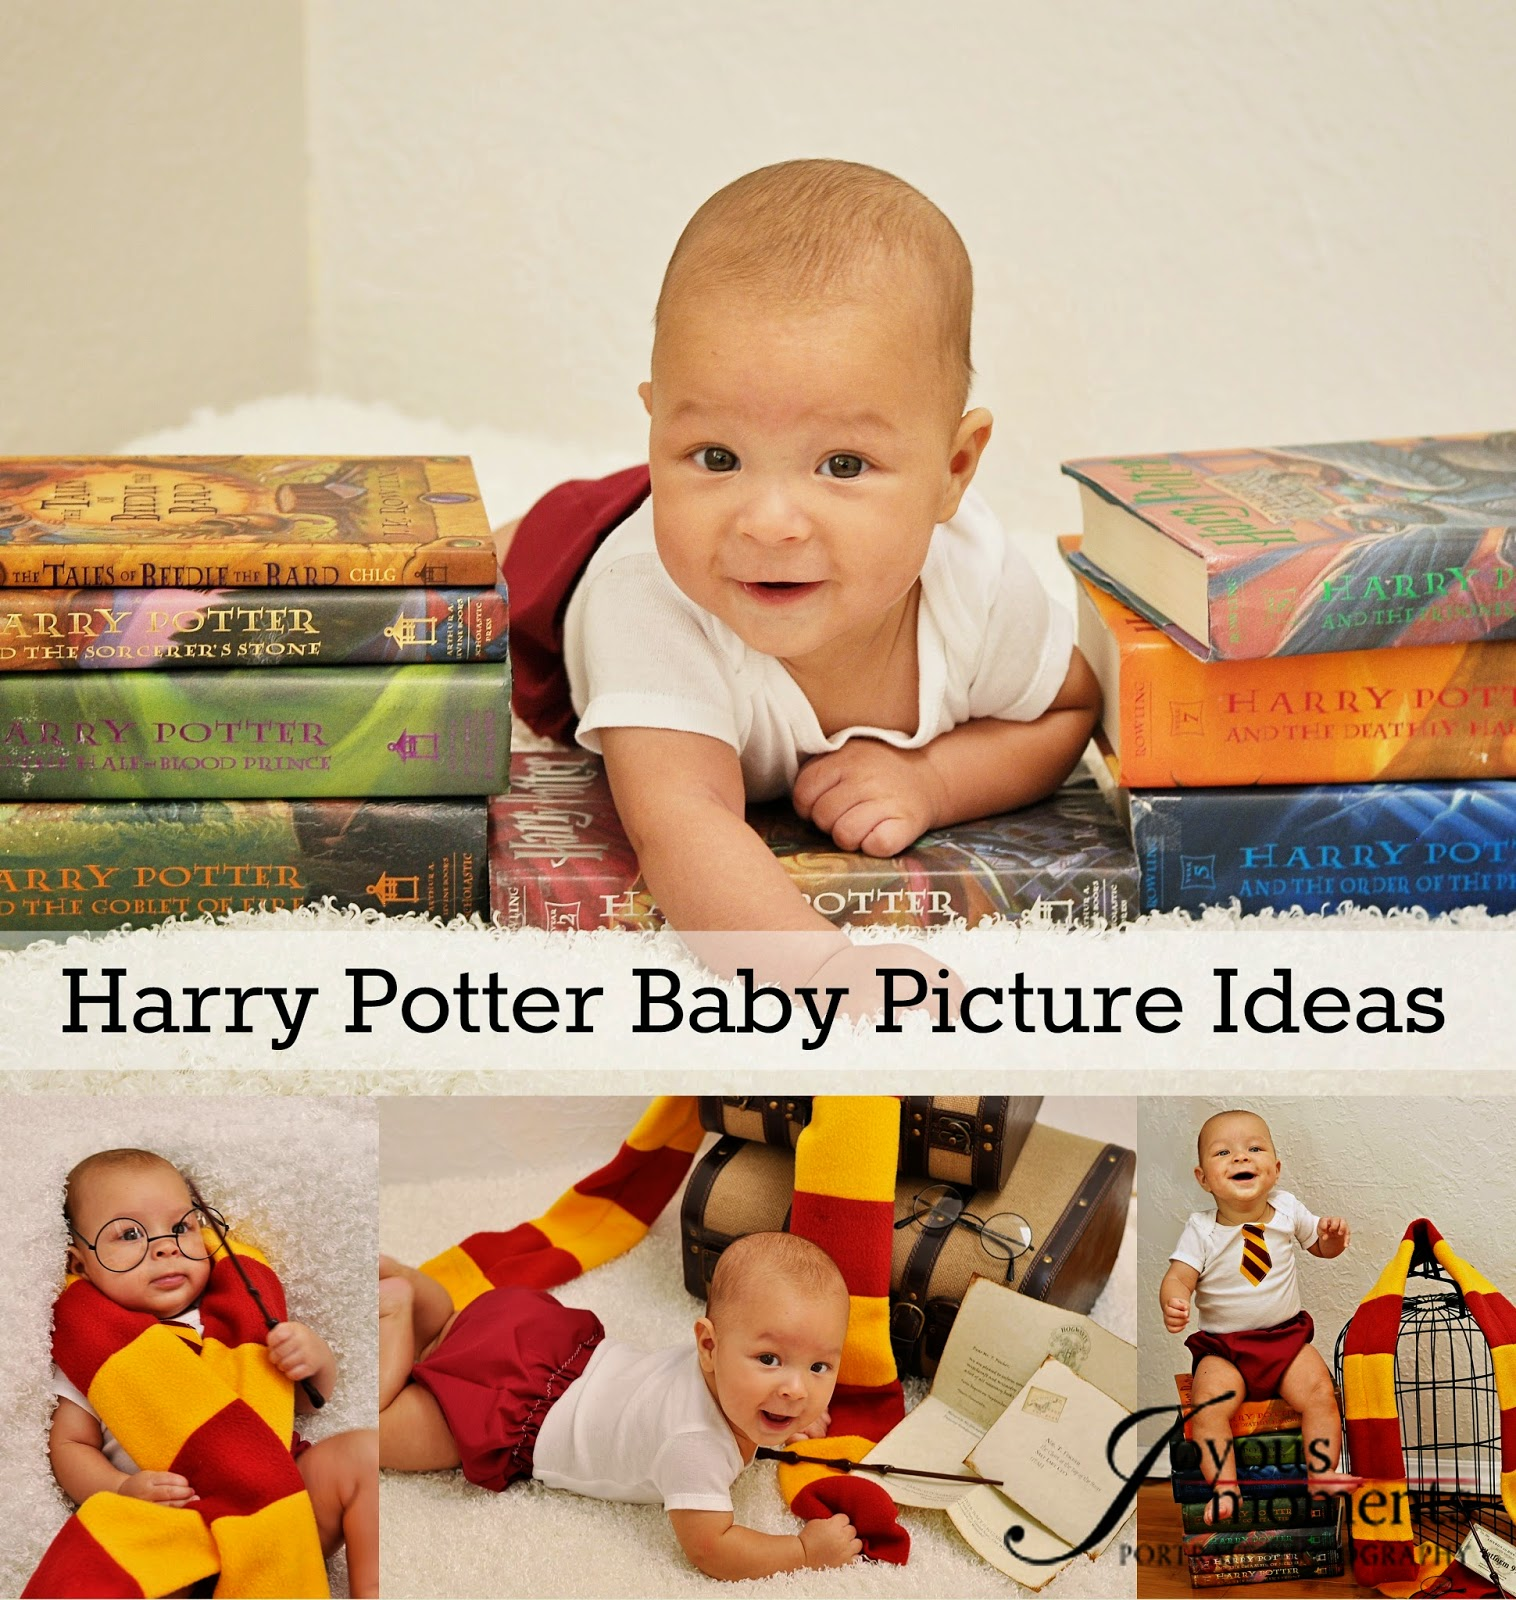 Harry Potter Baby Pictures